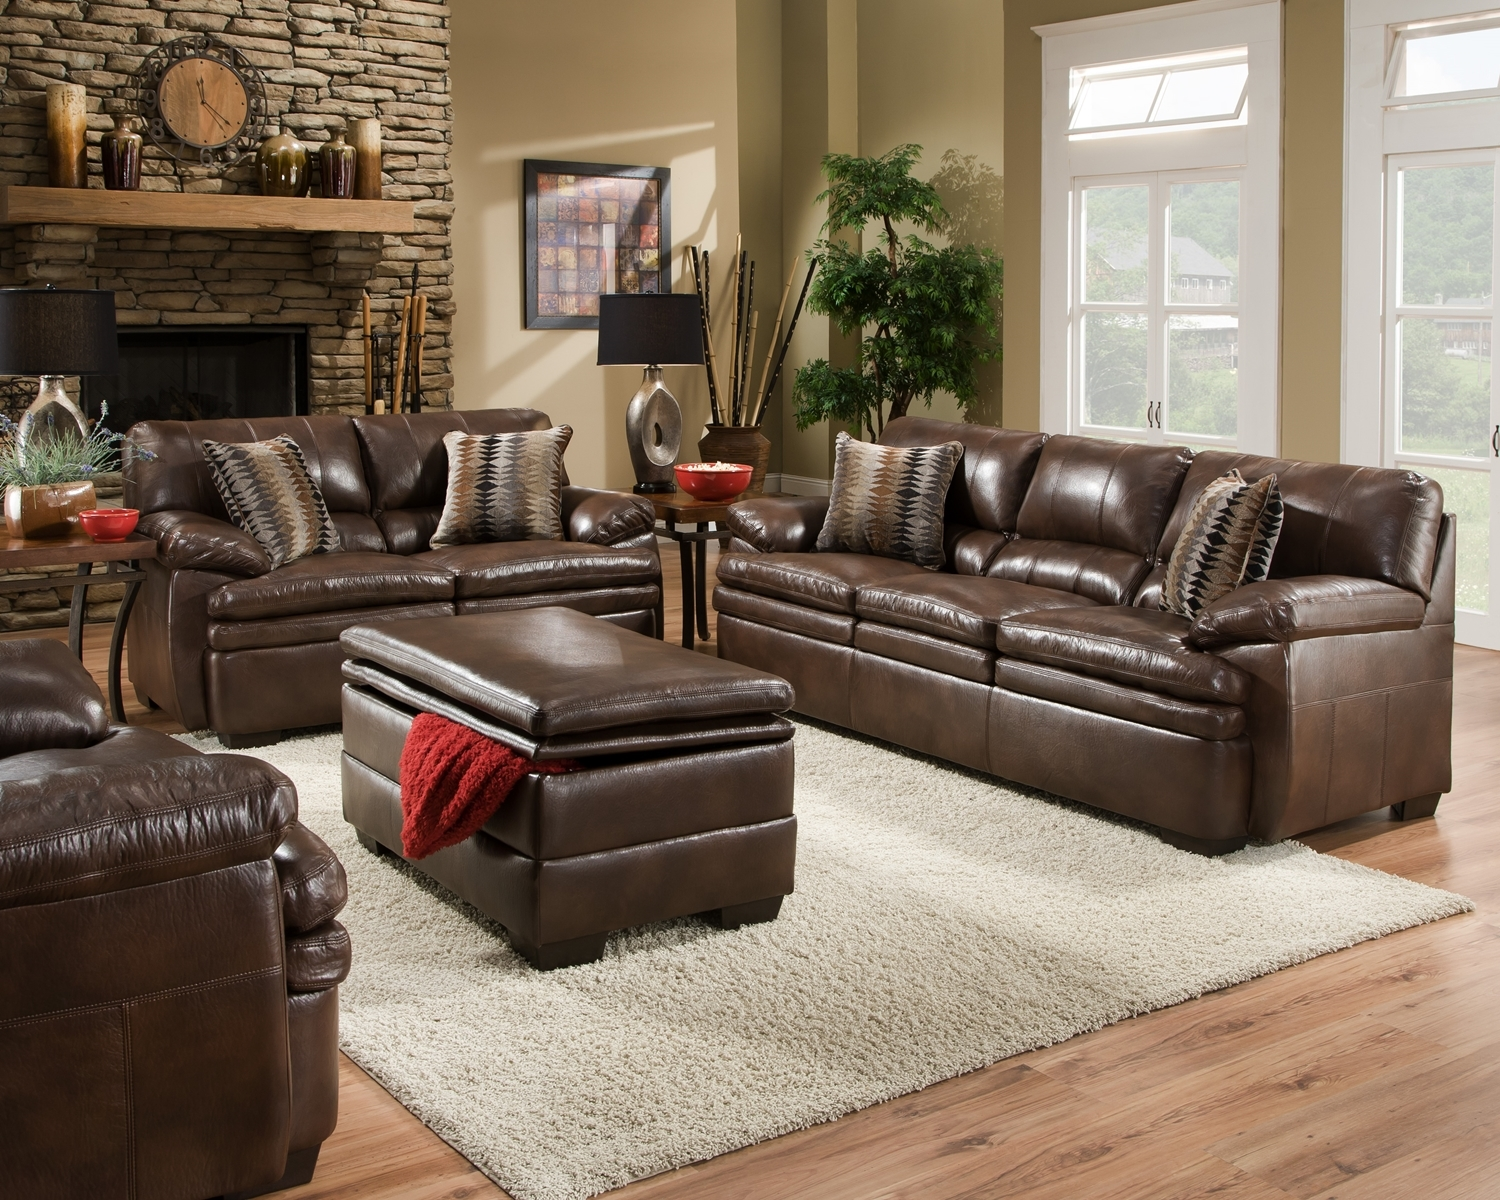 Brown bonded leather sofa set casual living room furniture Living room sofa set